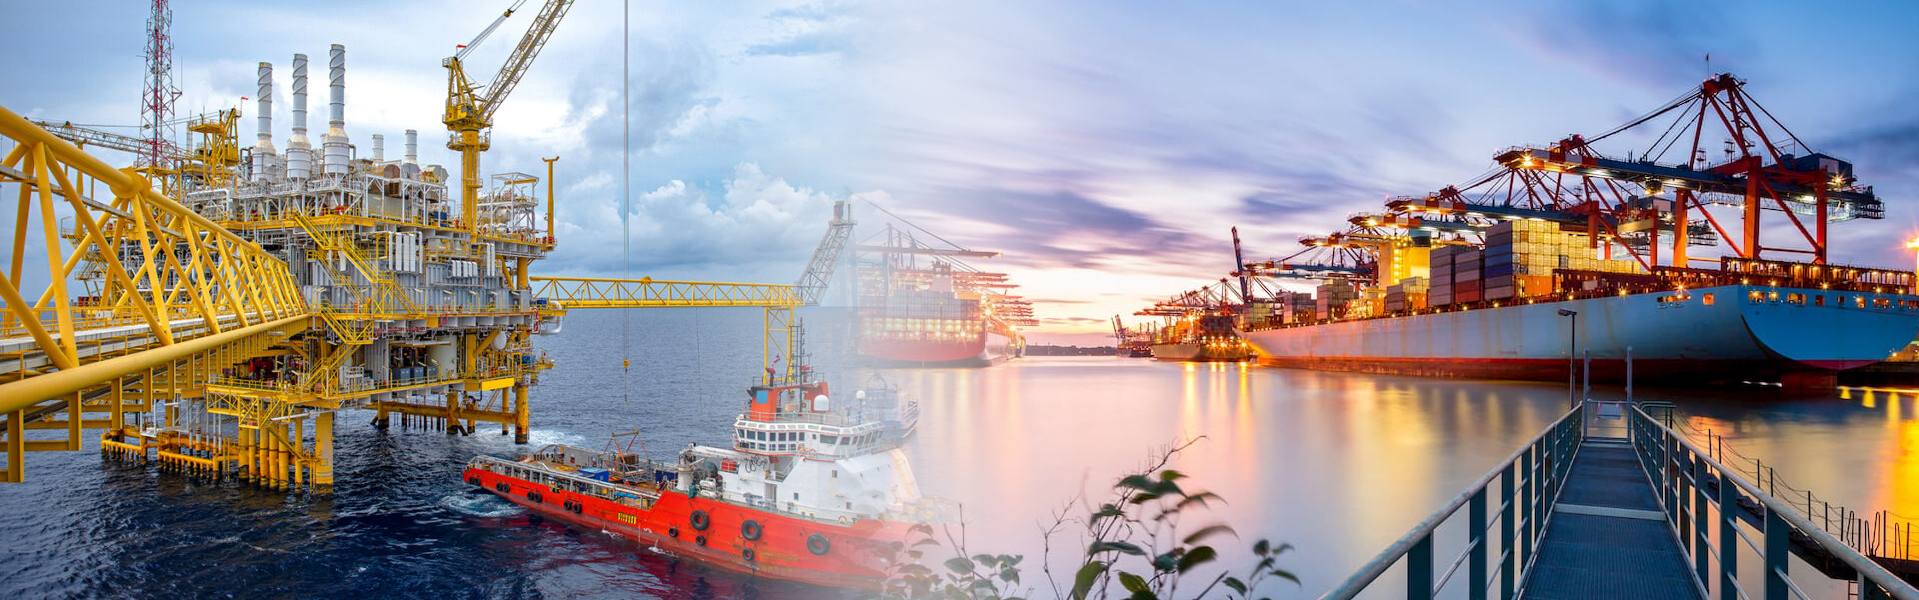 3dexperience for the marine and offshore industry